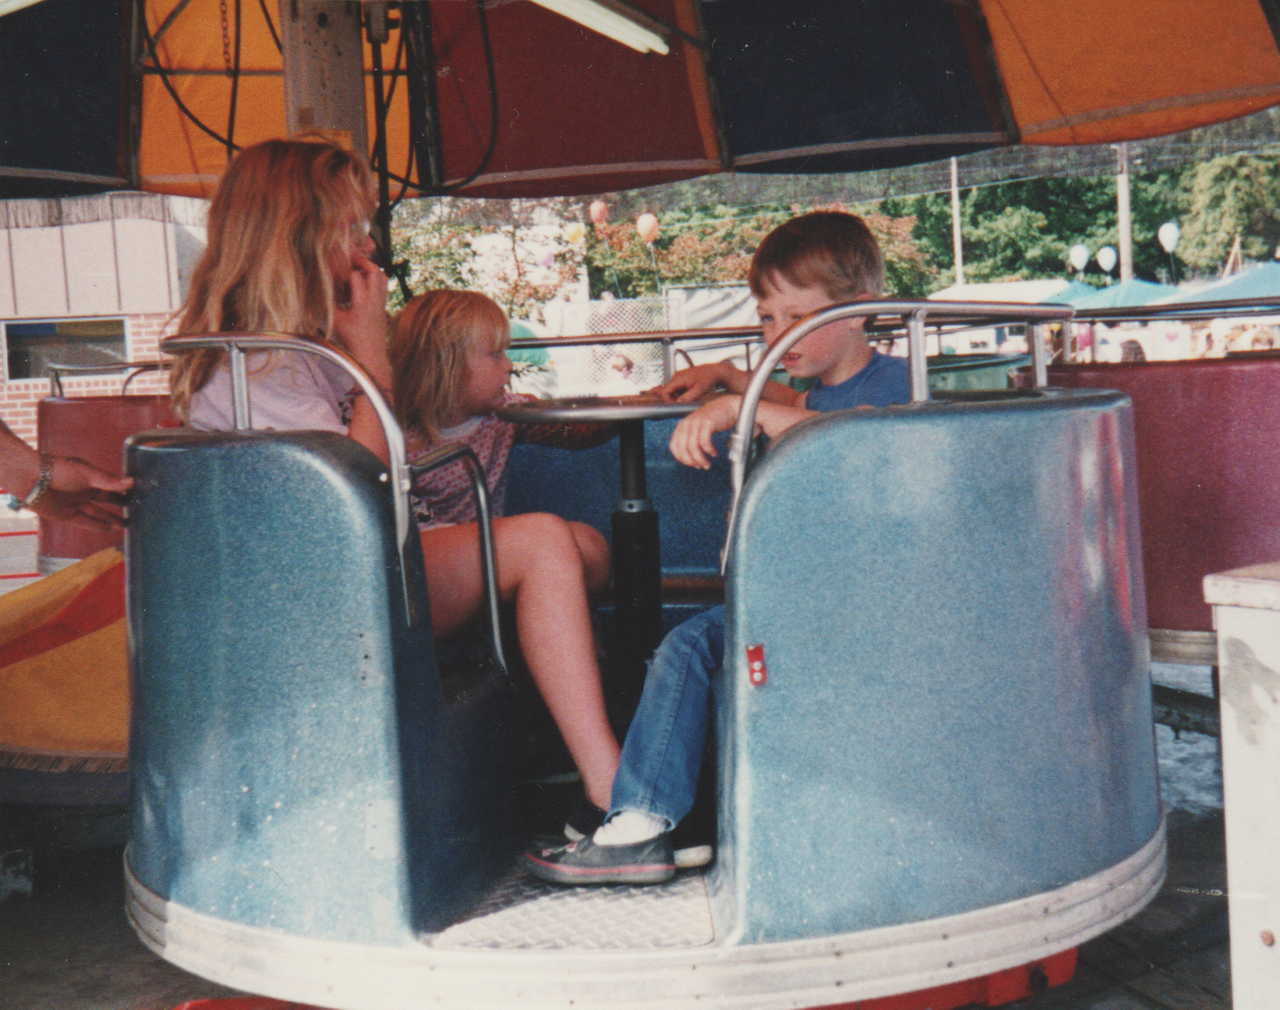 1992-09 - Fair in Forest Grove, parade, rides, Katie, Rick, Joey, Crystal, by Marilyn-14.png